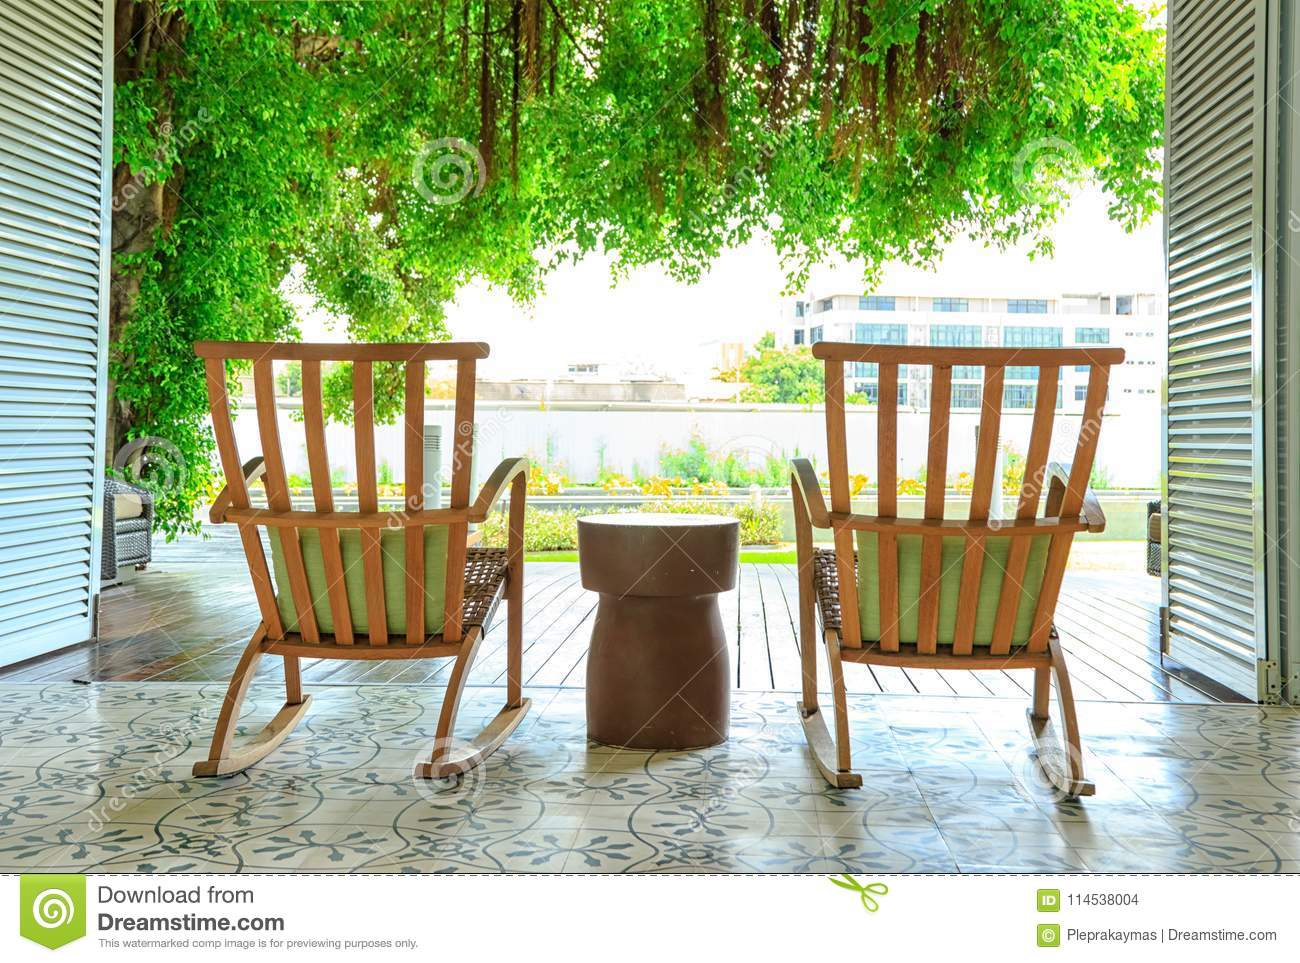 Wondrous Rocking Chair In The Terrace On The Garden Stock Photo Squirreltailoven Fun Painted Chair Ideas Images Squirreltailovenorg